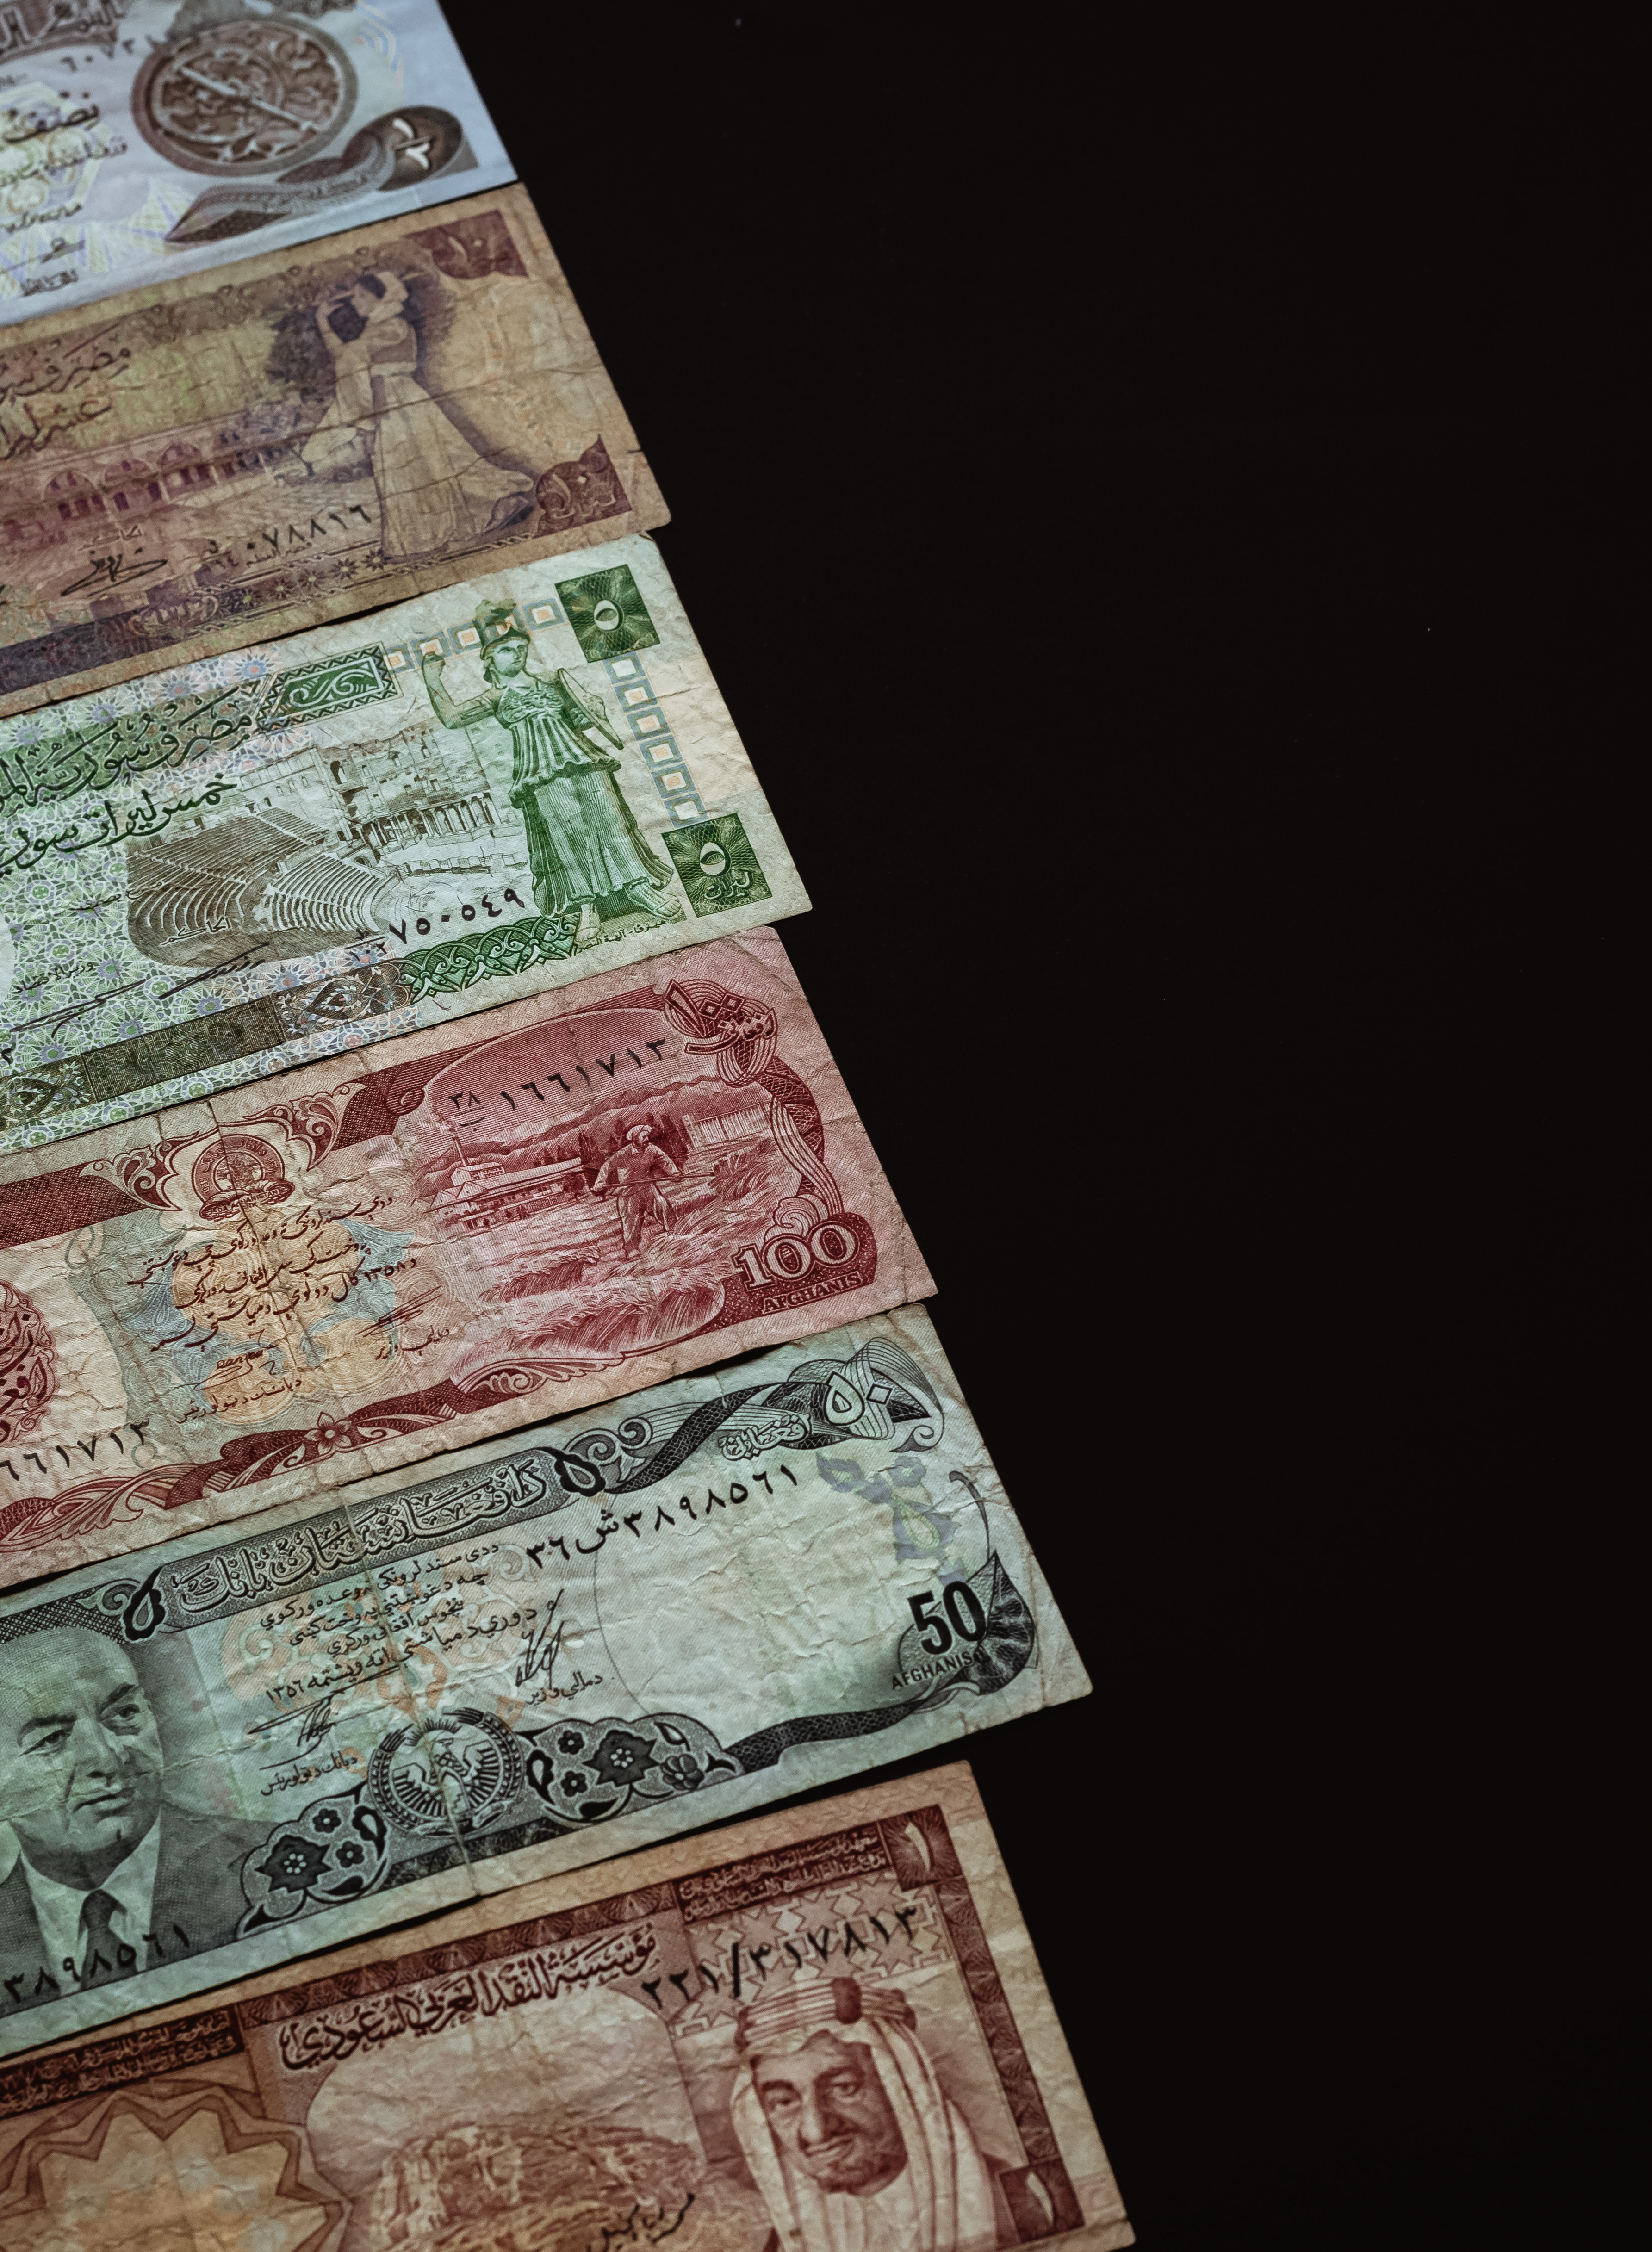 Old currencies of Arab countries, from Syria to Iraq.